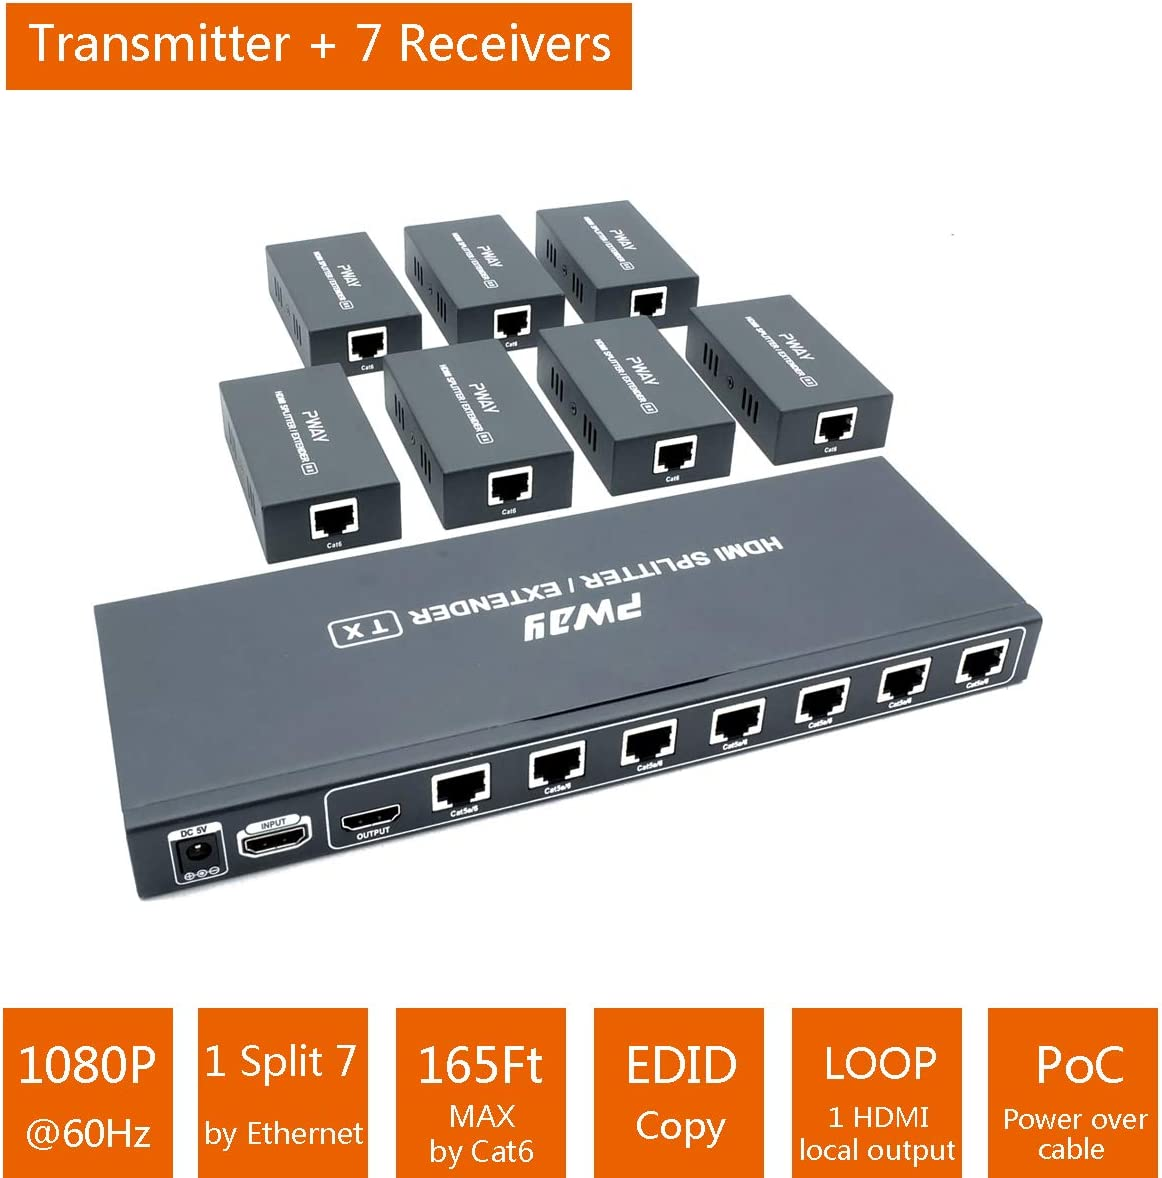 Cat7 with 1 HDMI Loopout 1080P@60Hz AV Signals Lossless Transmission Over Ethernet Cat5e 165Ft HDMI Extender Splitter 1x2 Port Up to 50M Cat6